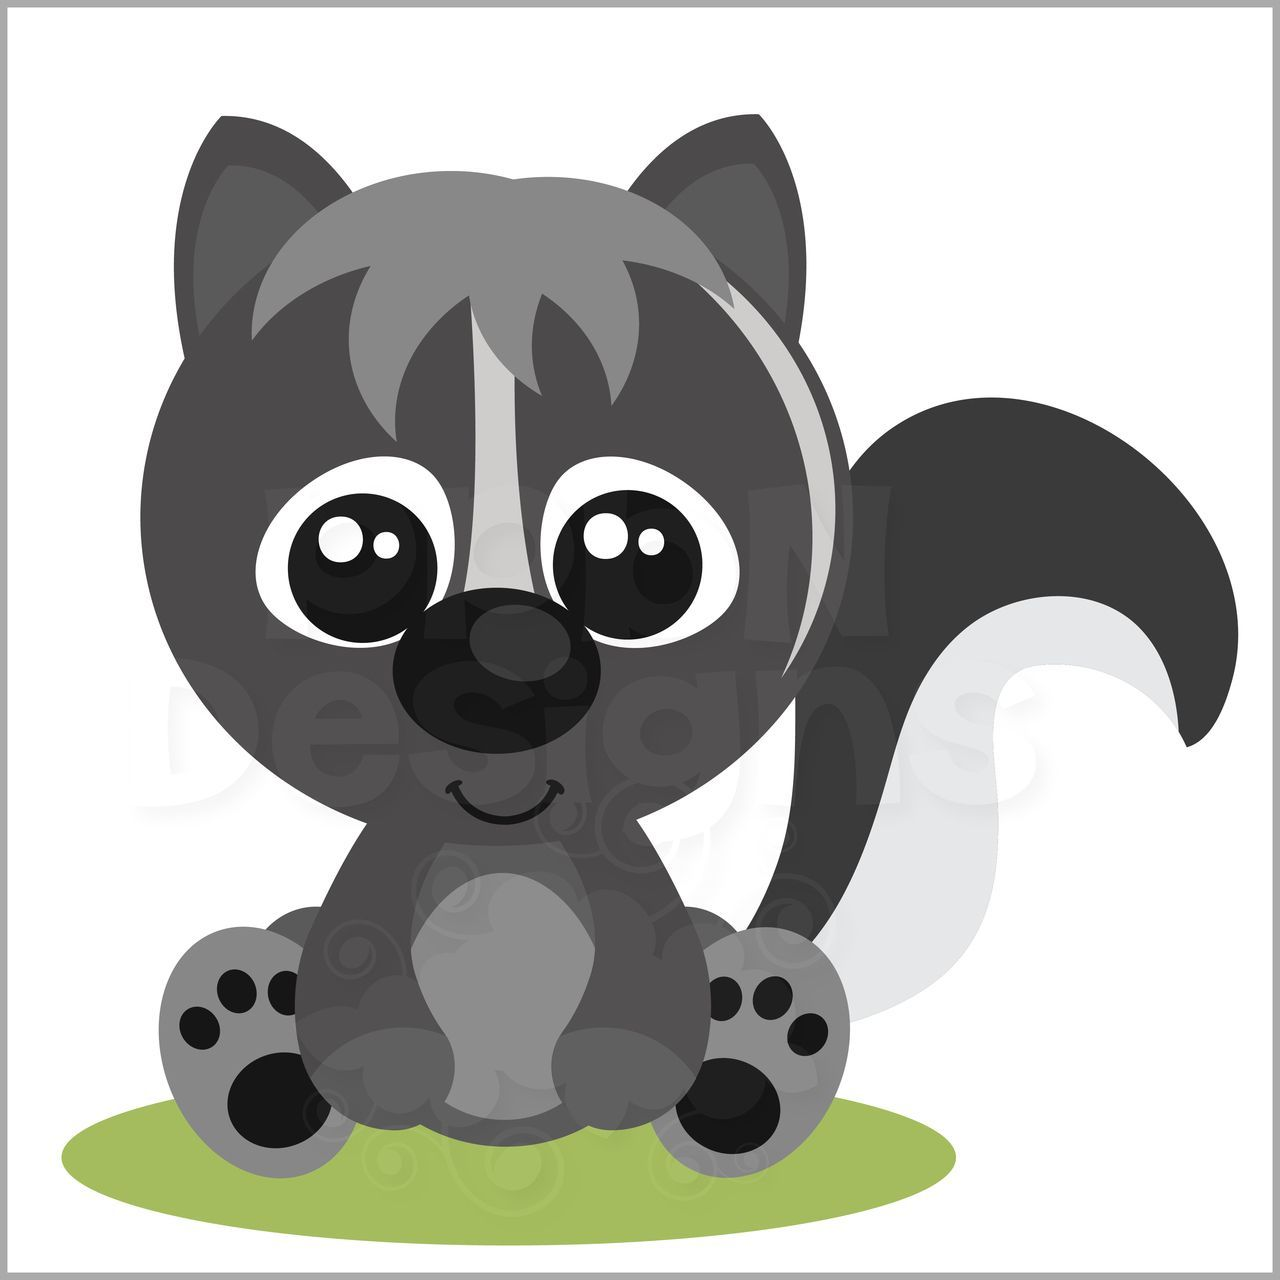 Baby skunk clipart svg royalty free library Baby skunk clipart 7 » Clipart Portal svg royalty free library